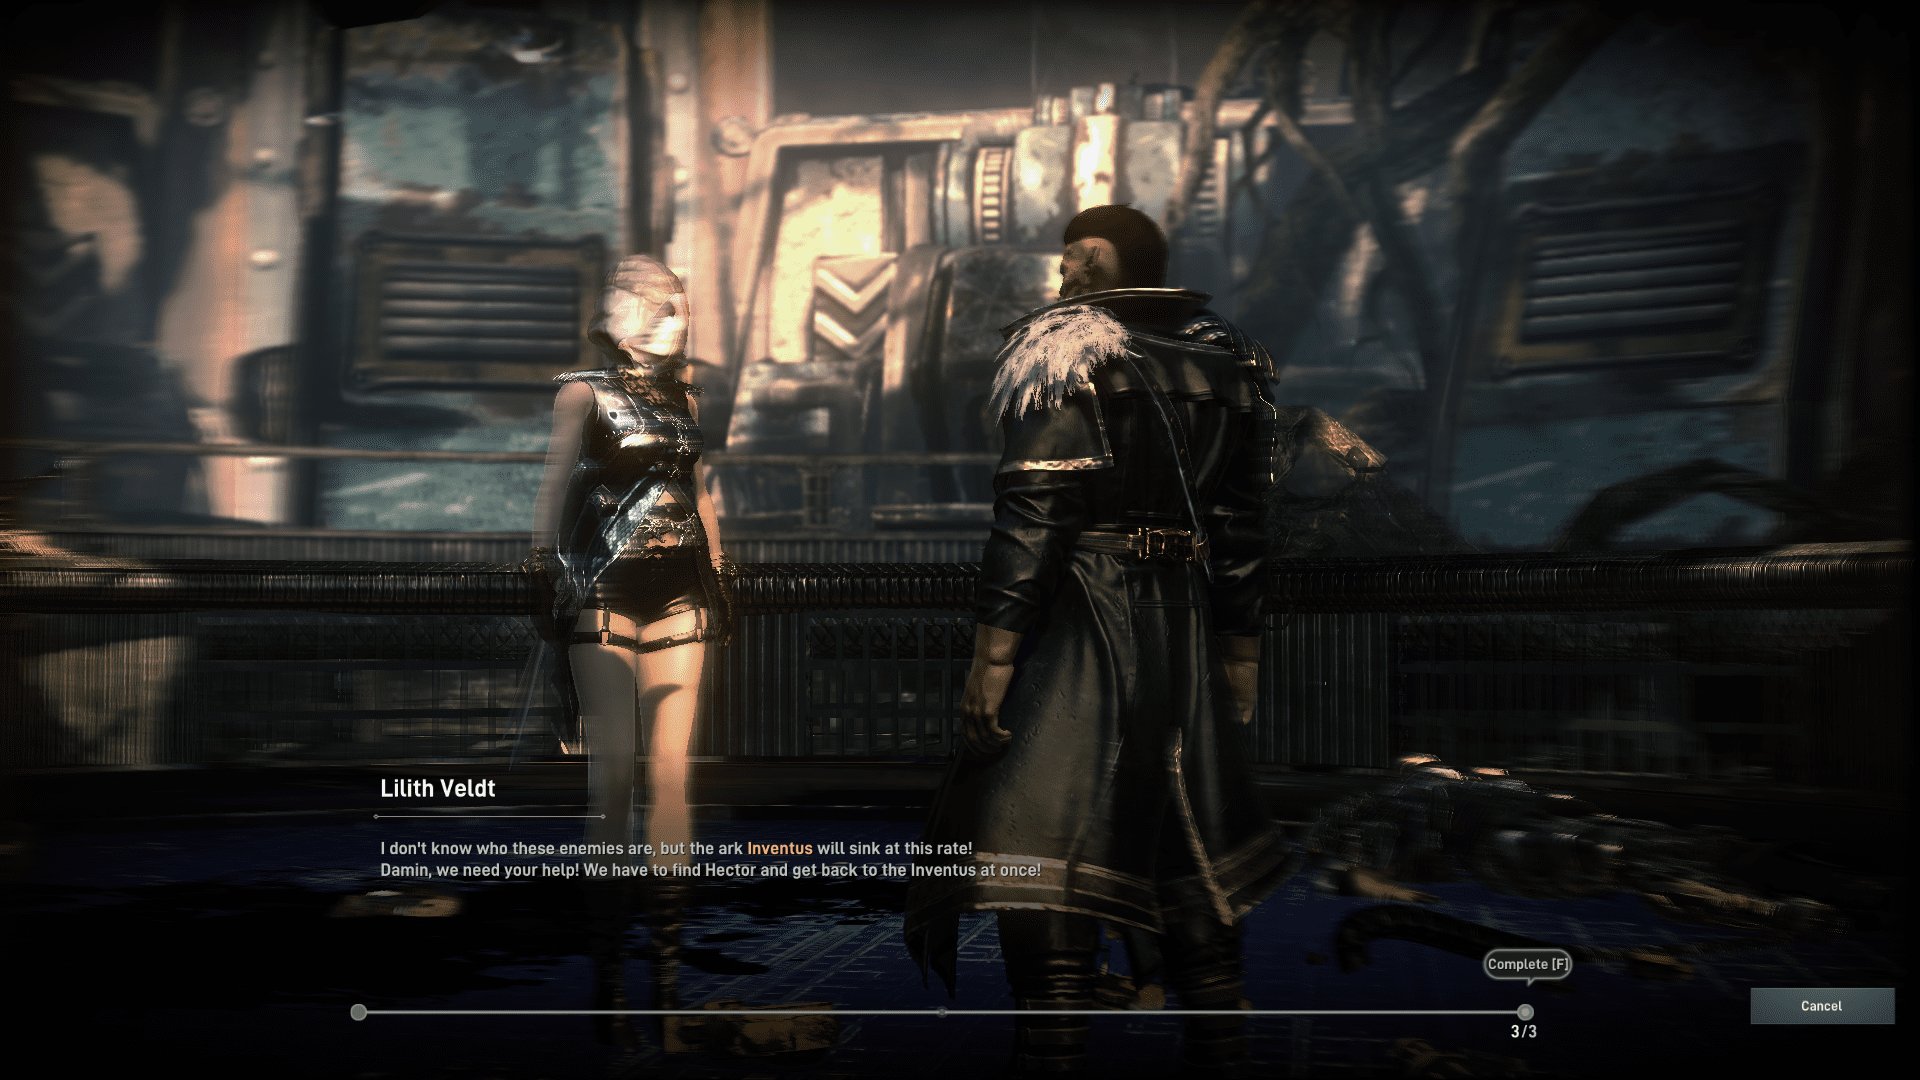 Elyon Screenshot from the dialogue cutscene when a character called Lilith Veldt is explaining the situation.